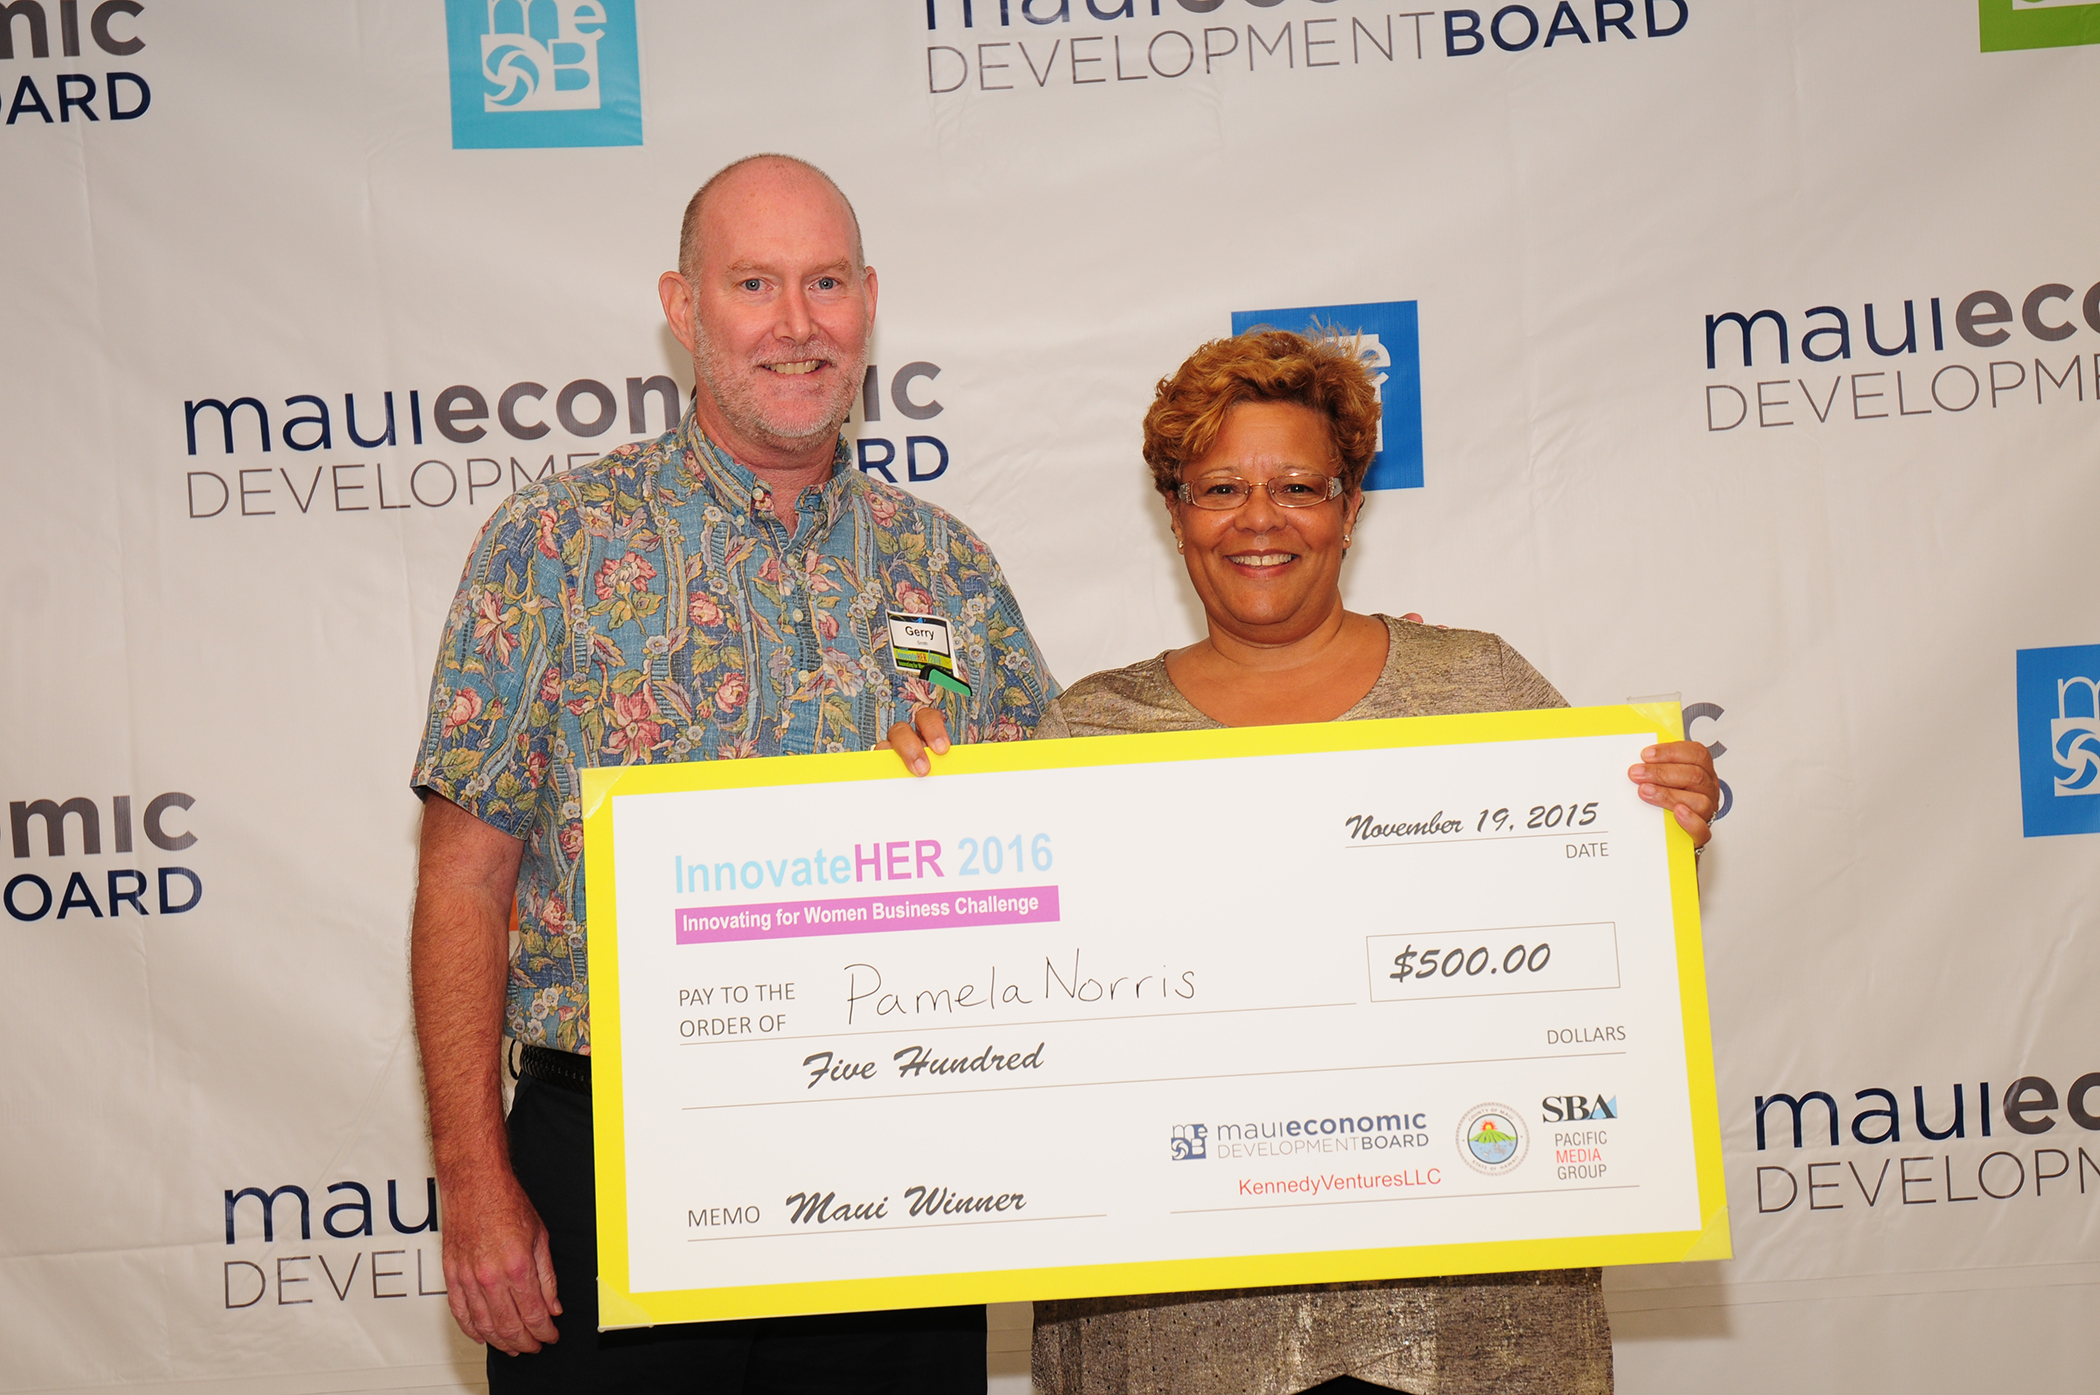 MEDB's Gerry Smith with first winner Pamela Norris. She received $500 in cash as the Maui winner. If selected by the SBA as a national finalist she'll have an opportunity to compete for $70,000 in prize money.